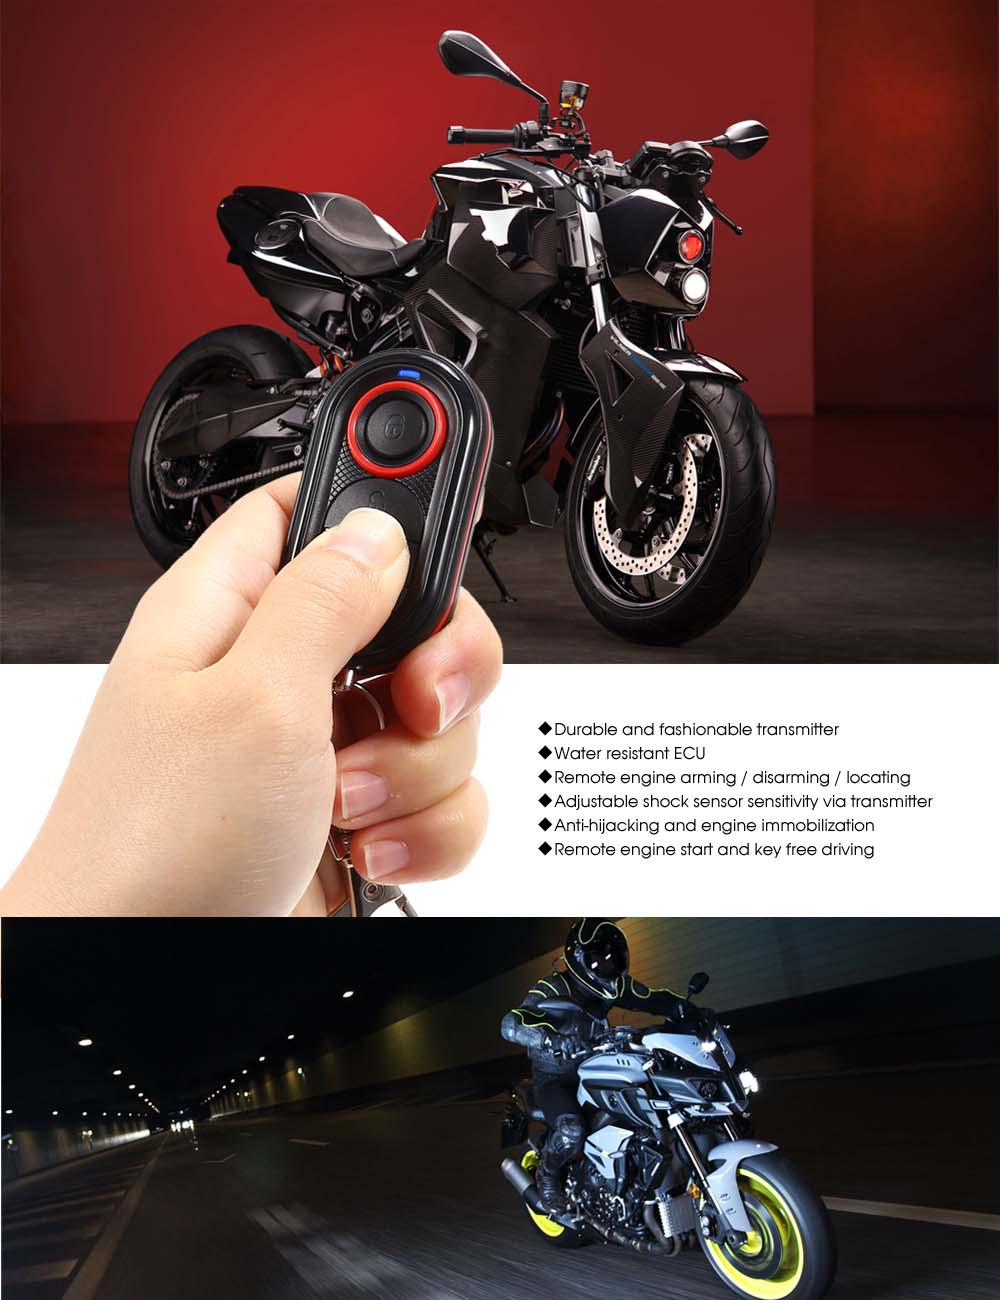 Steelmate 986e Motorcycle Alarm System 2163 Free Shipping Download Image Yamaha Moto 4 Wiring Diagram Pc Android Iphone And Package Contents 2 X Transmitter 1 Ecu Speaker Wire Harness Fuse English User Manual